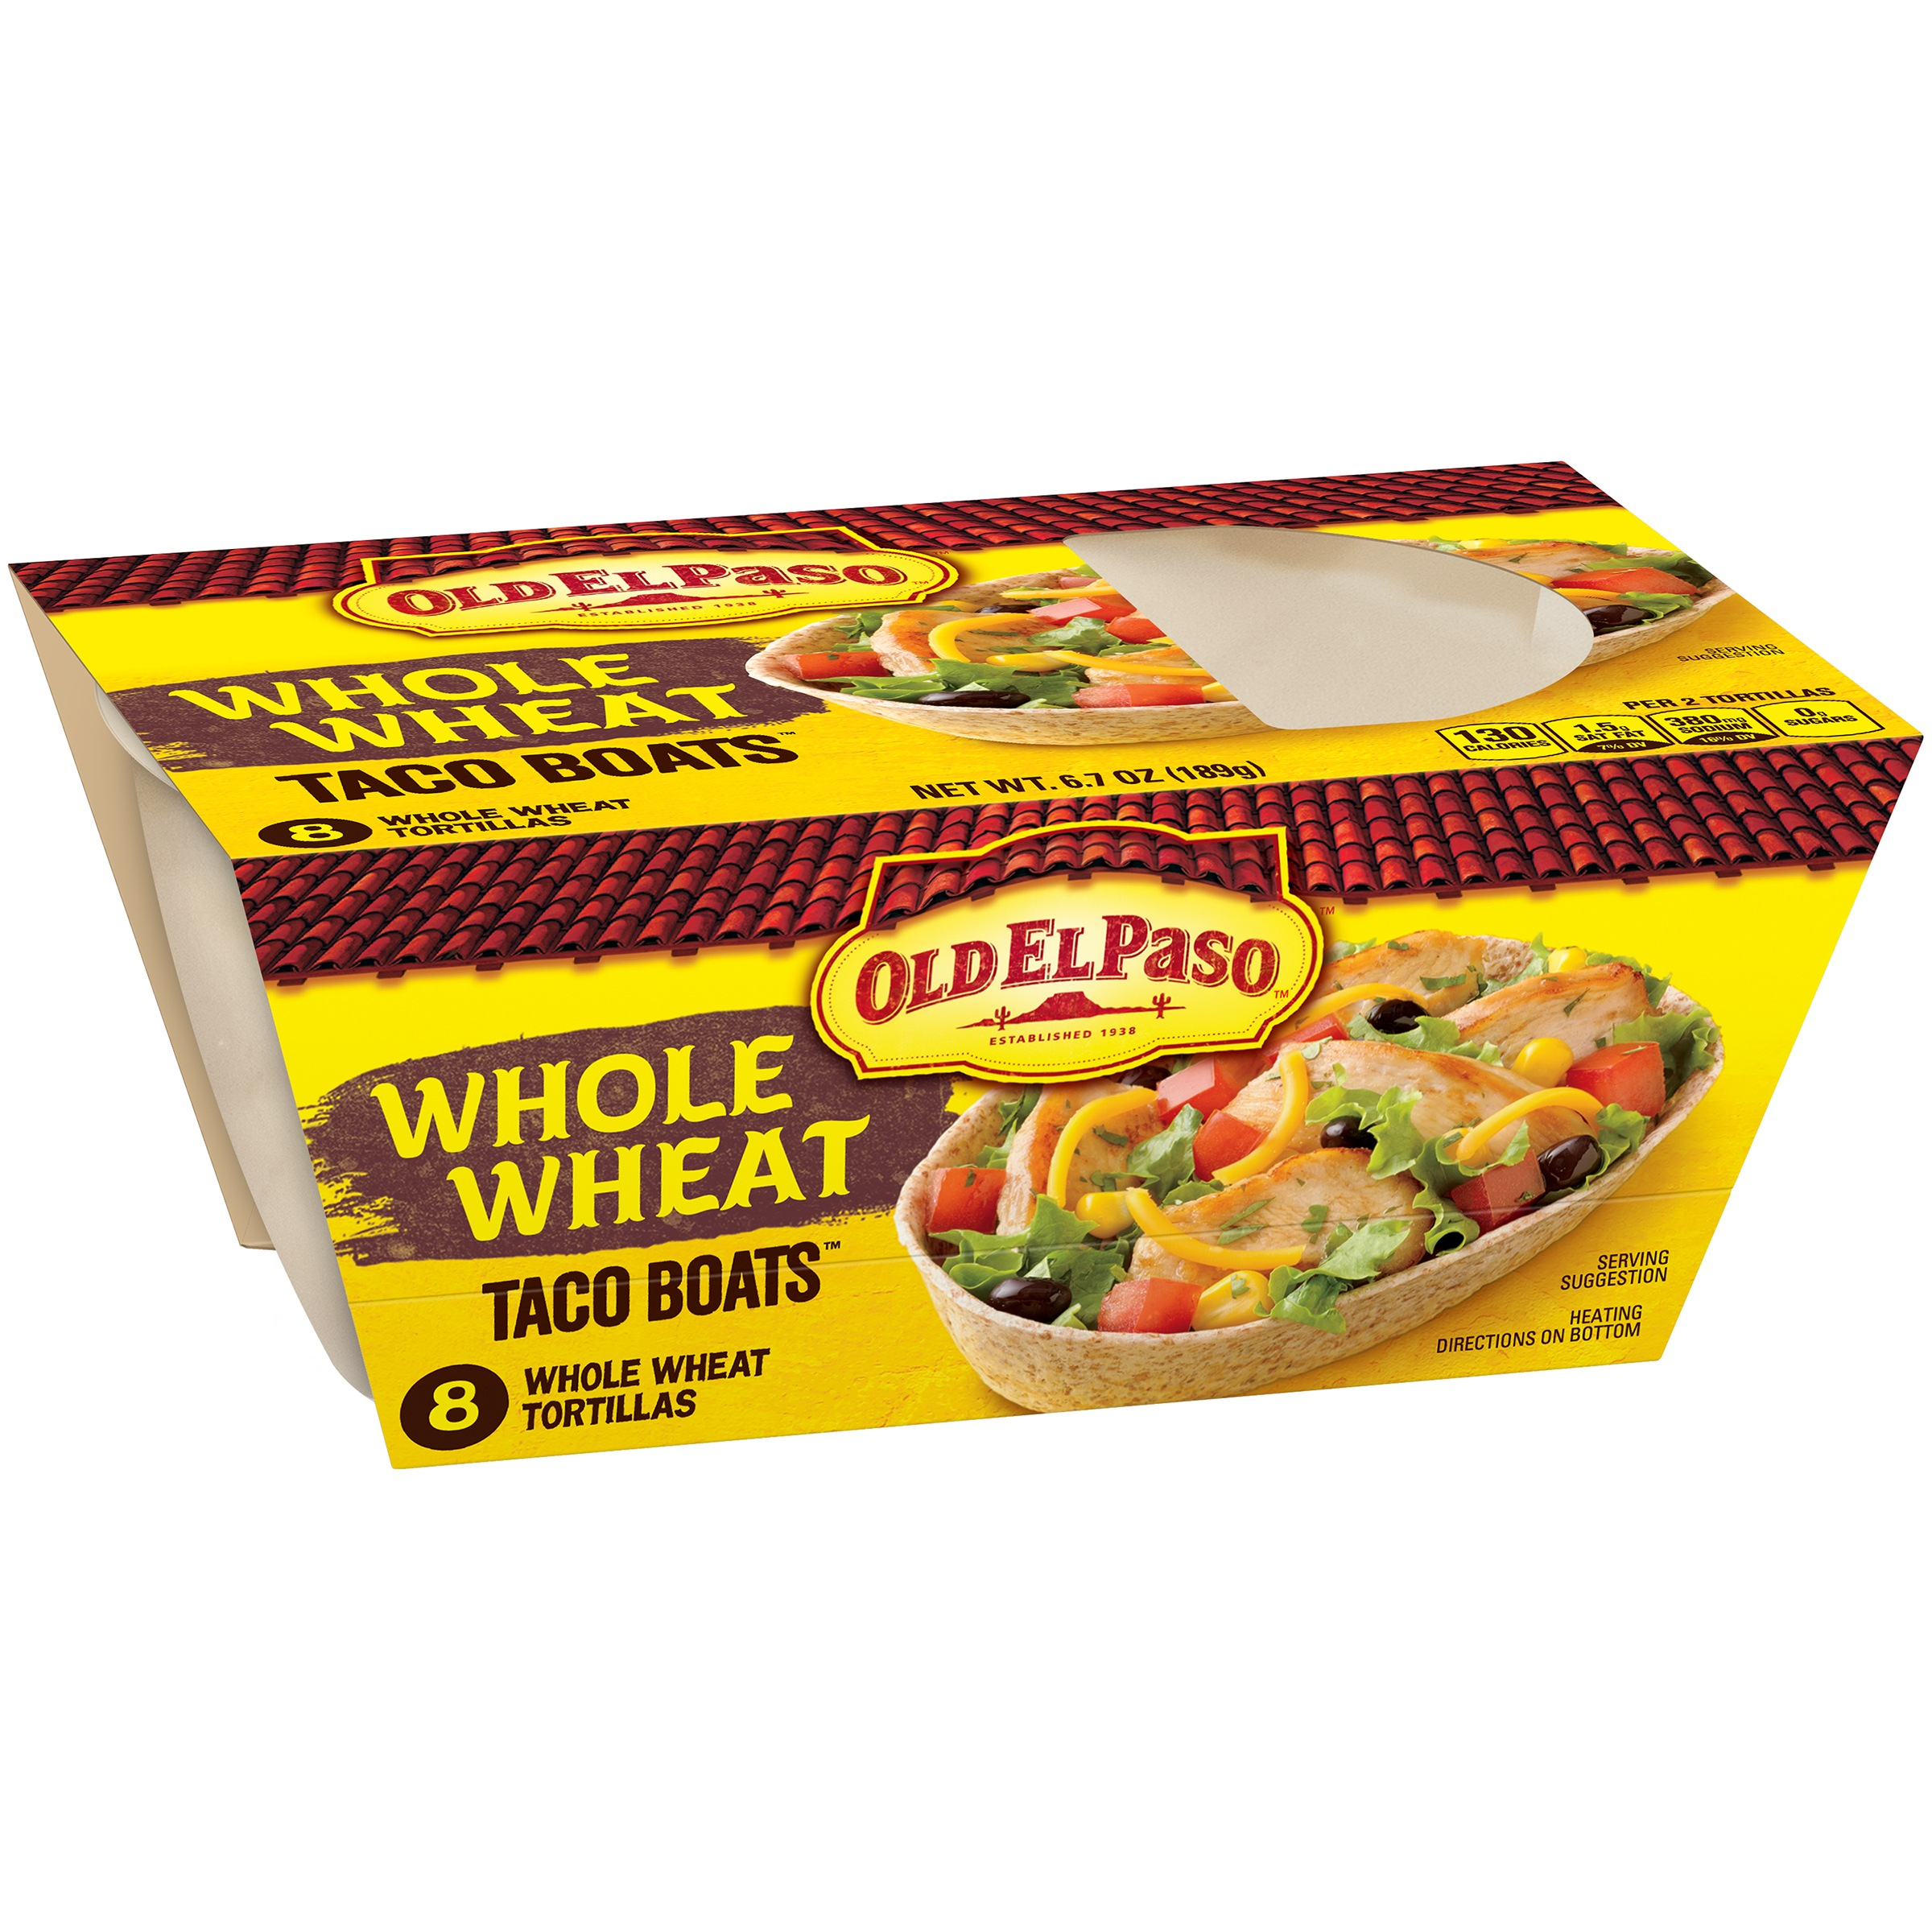 Old El Paso Taco Boats Whole Wheat Tortillas, 8 ct, 6.7 oz by General Mills Sales, Inc.